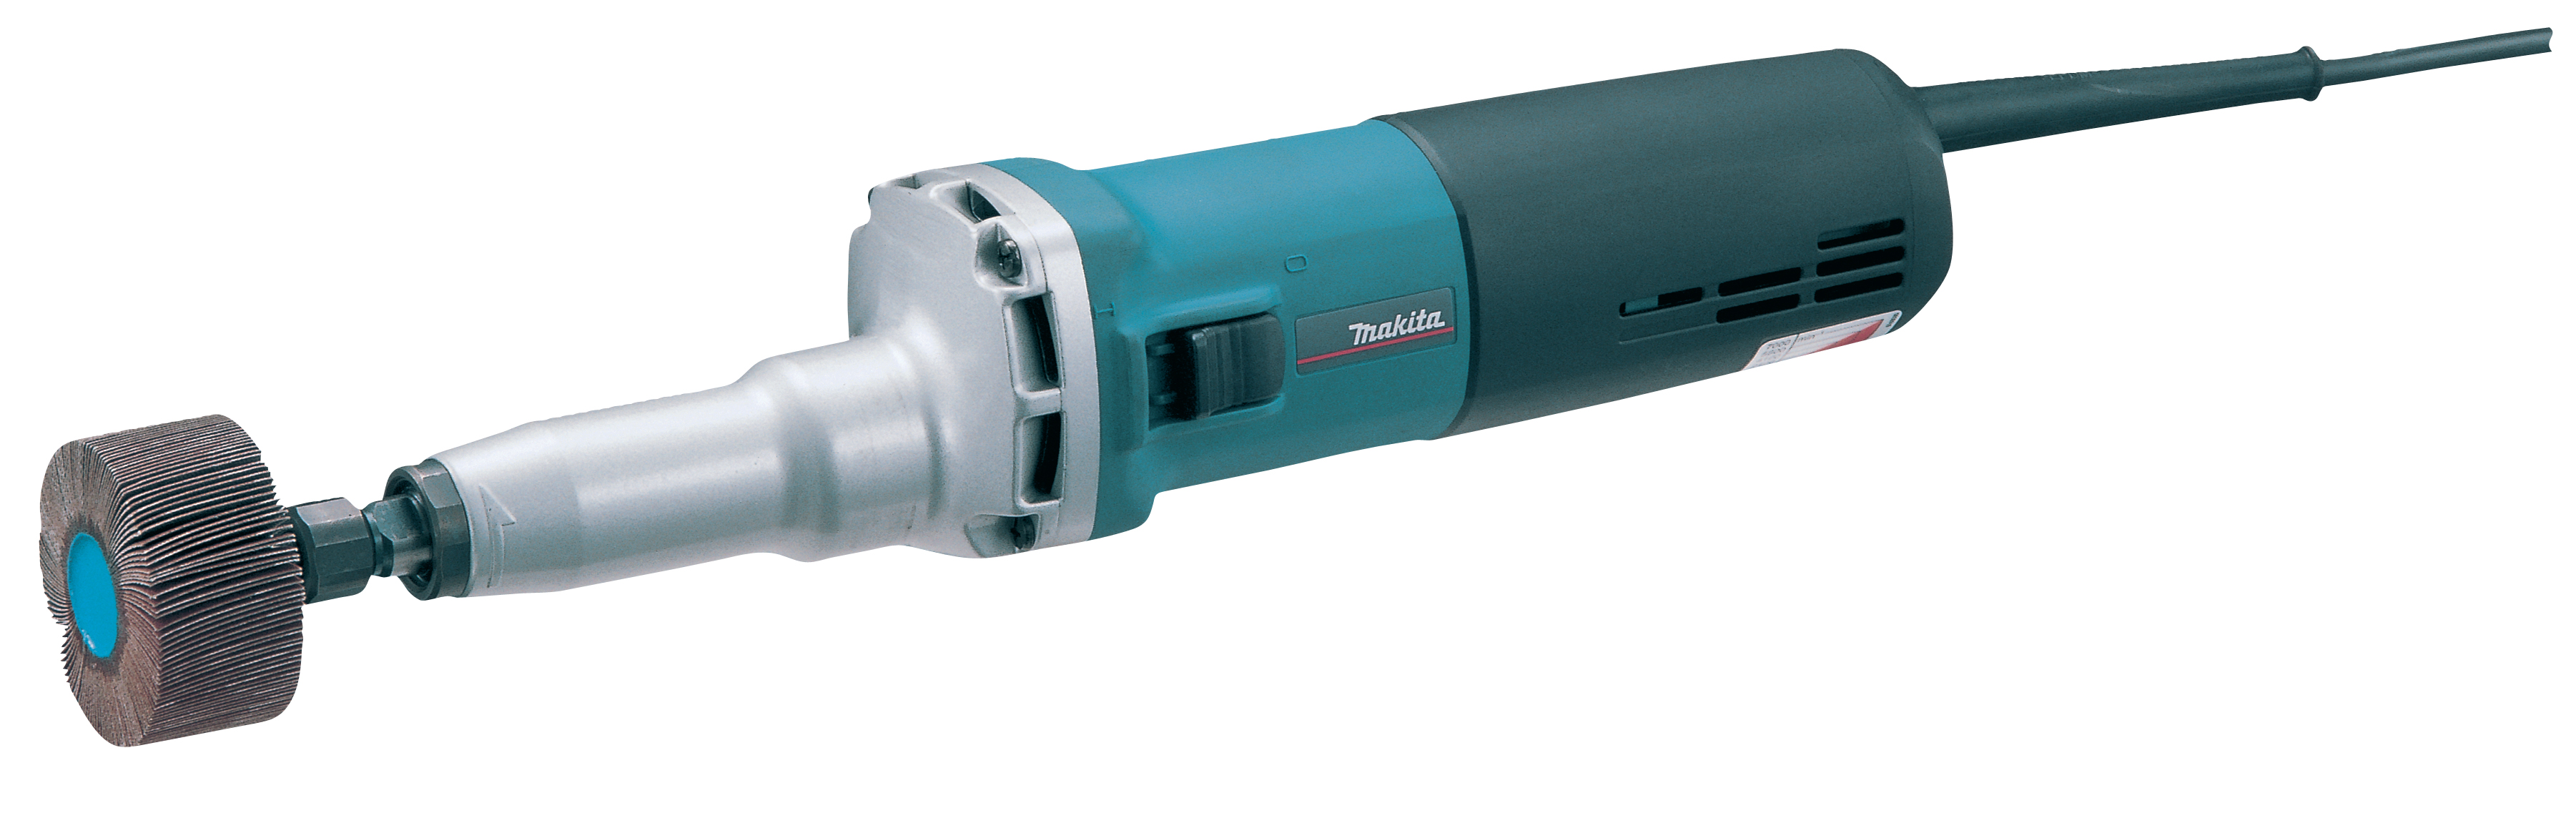 Pneumatic belt sander reviews